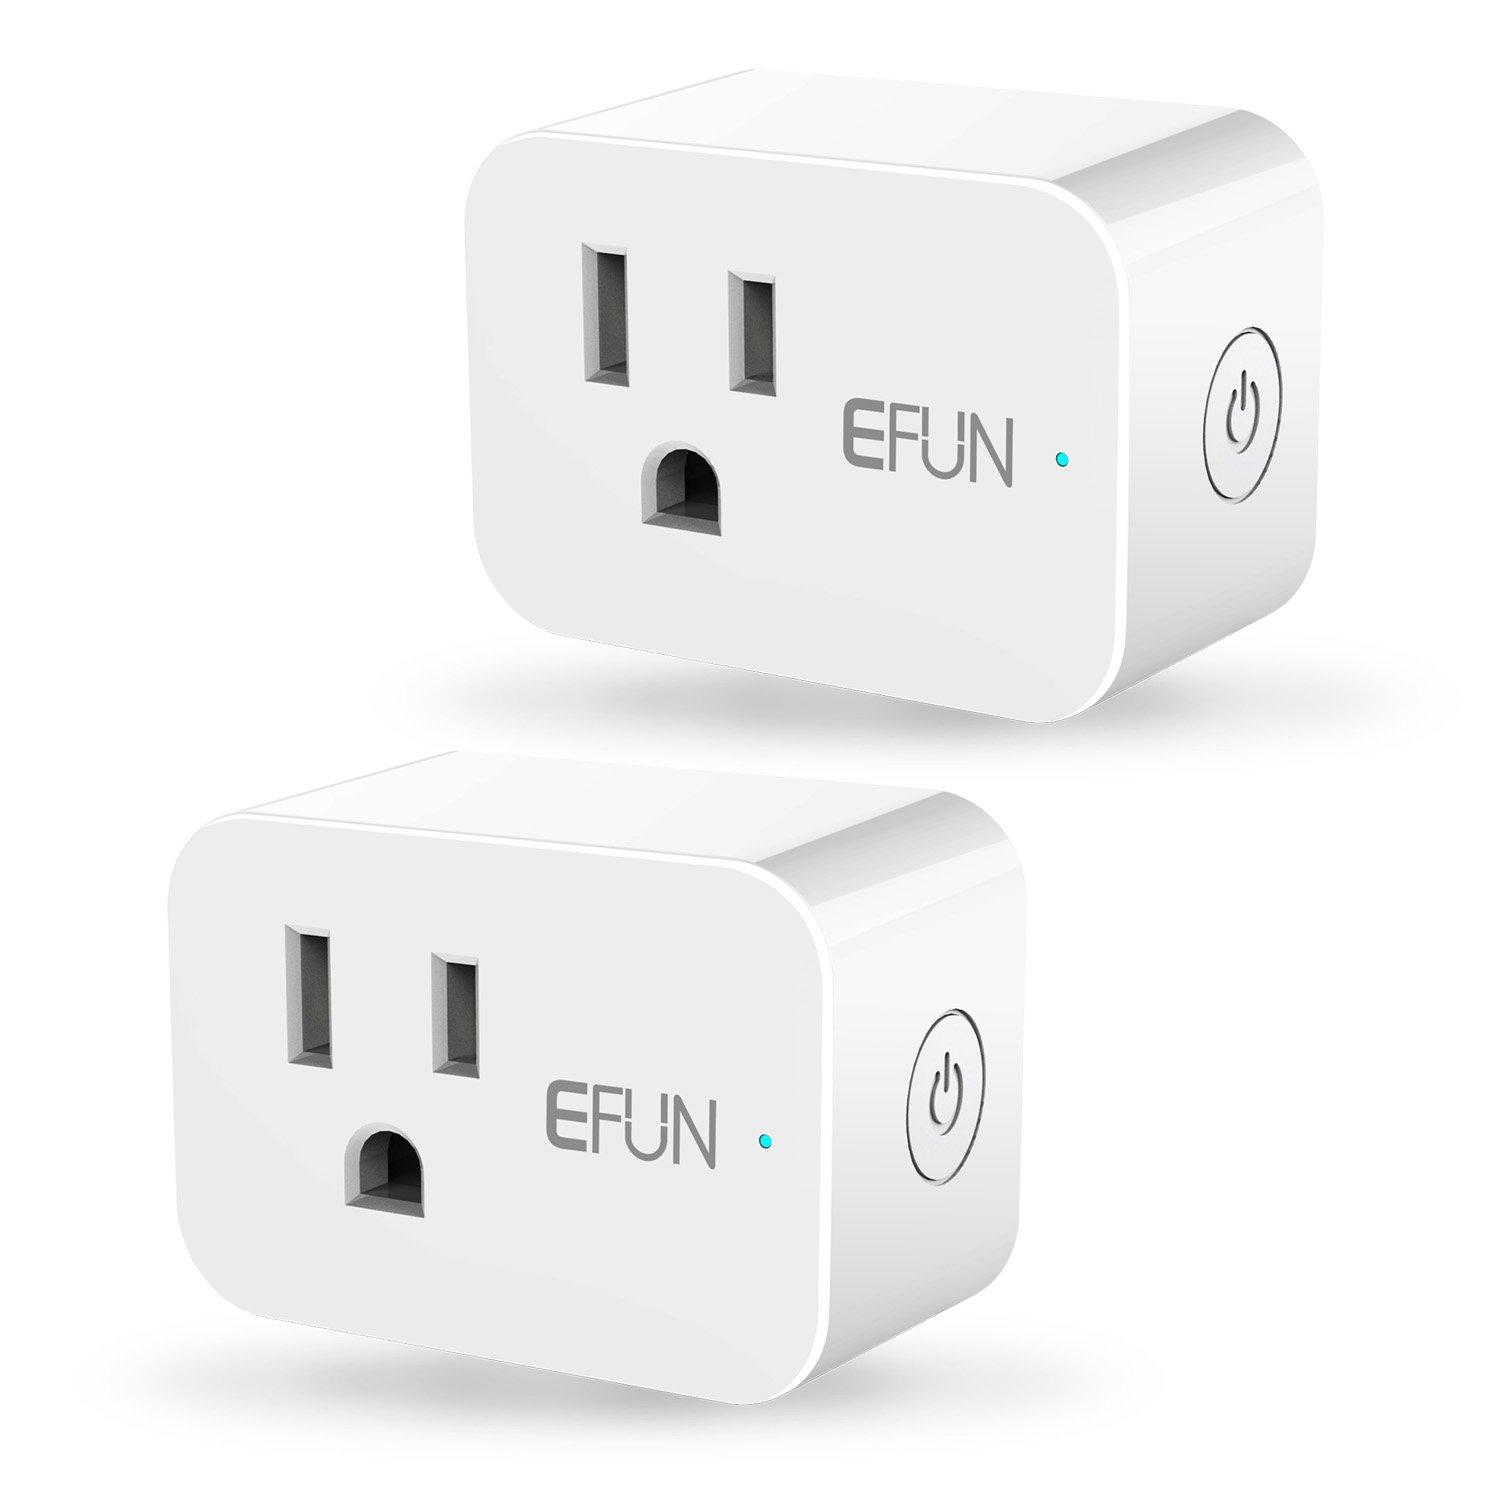 EFUN SH331W 2.4GHz Wi-fi Smart Plug,Energy Motoring,No Hub Required,Outlet Socket,10A(Works for Appliance below 1200 Watts),Works with Alexa/Google Assistant/IFTTT,2 Pack